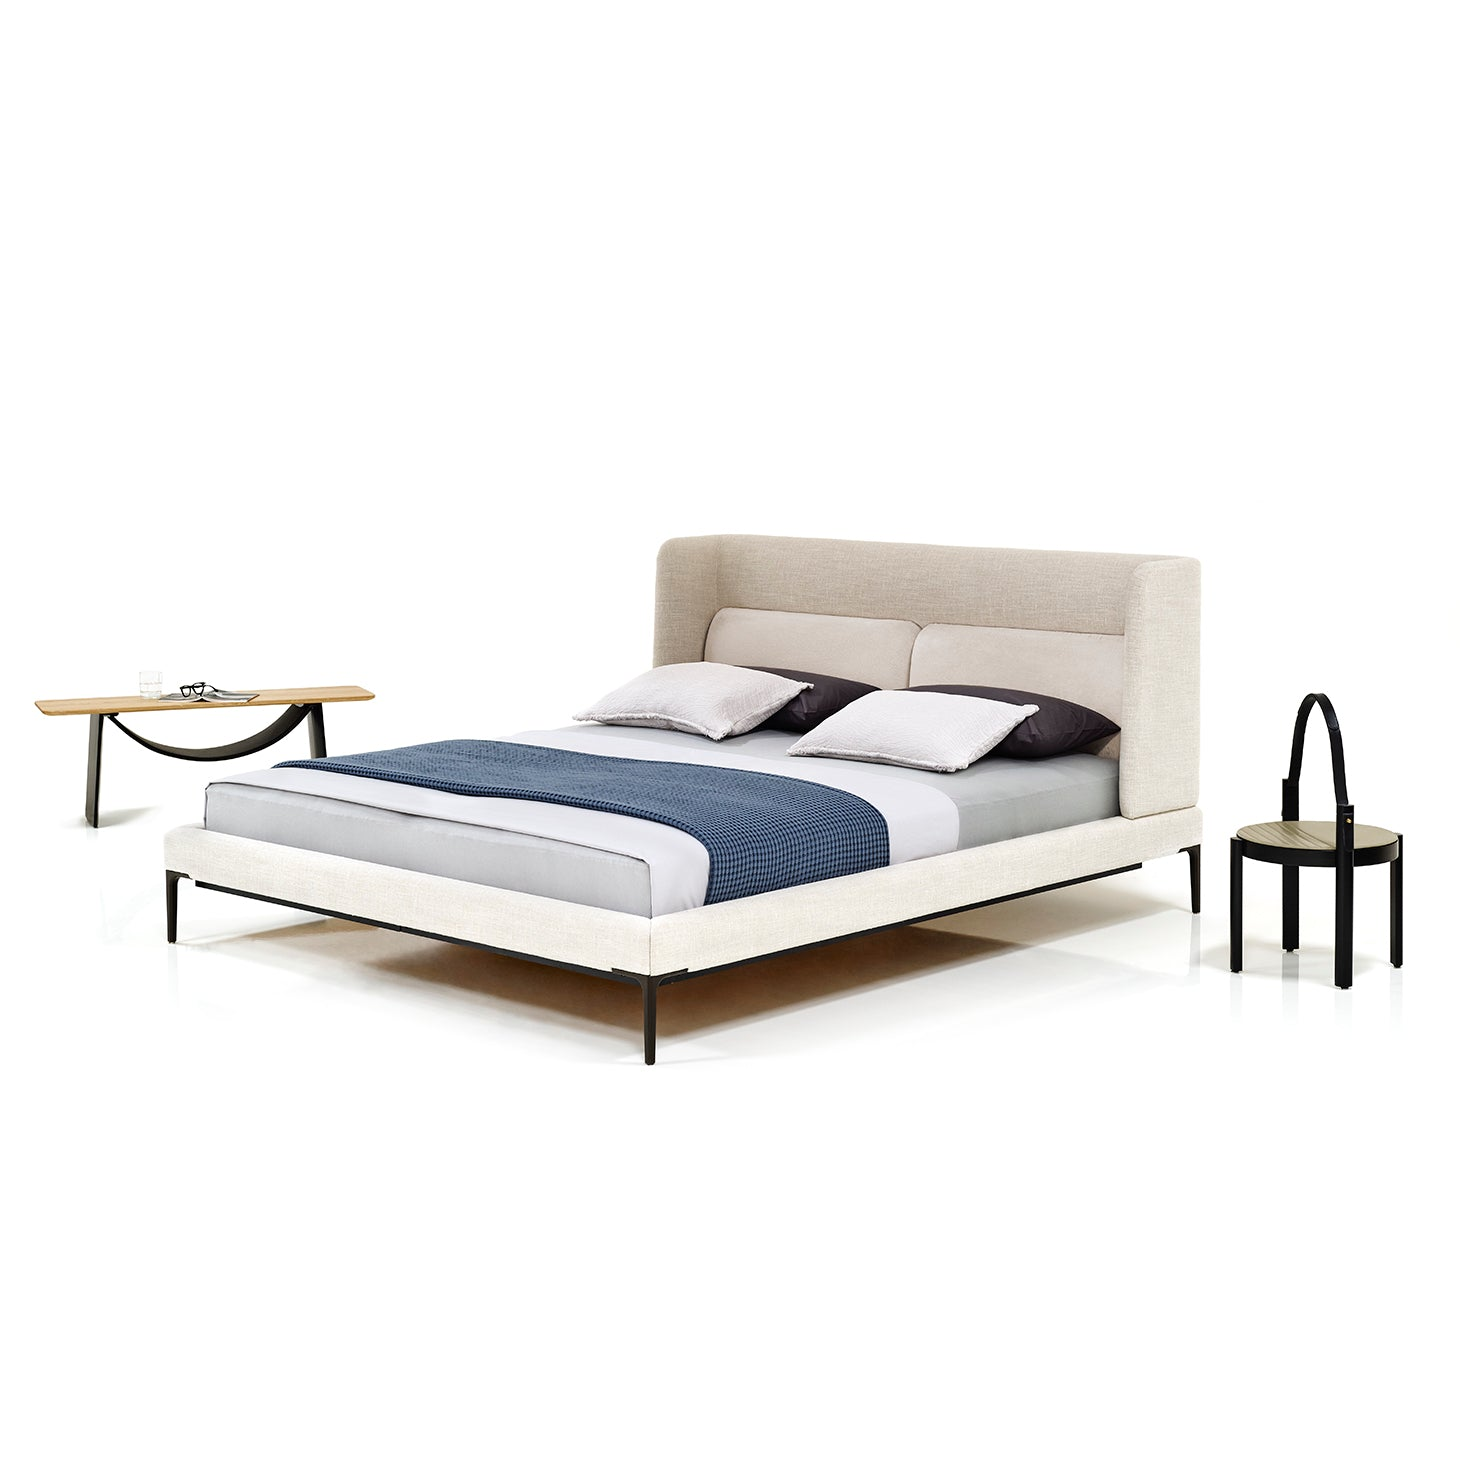 Joyce Niche Bed Beds Nada Nasrallah & Christian Horner Designer Furniture Sku: 758-110-10056